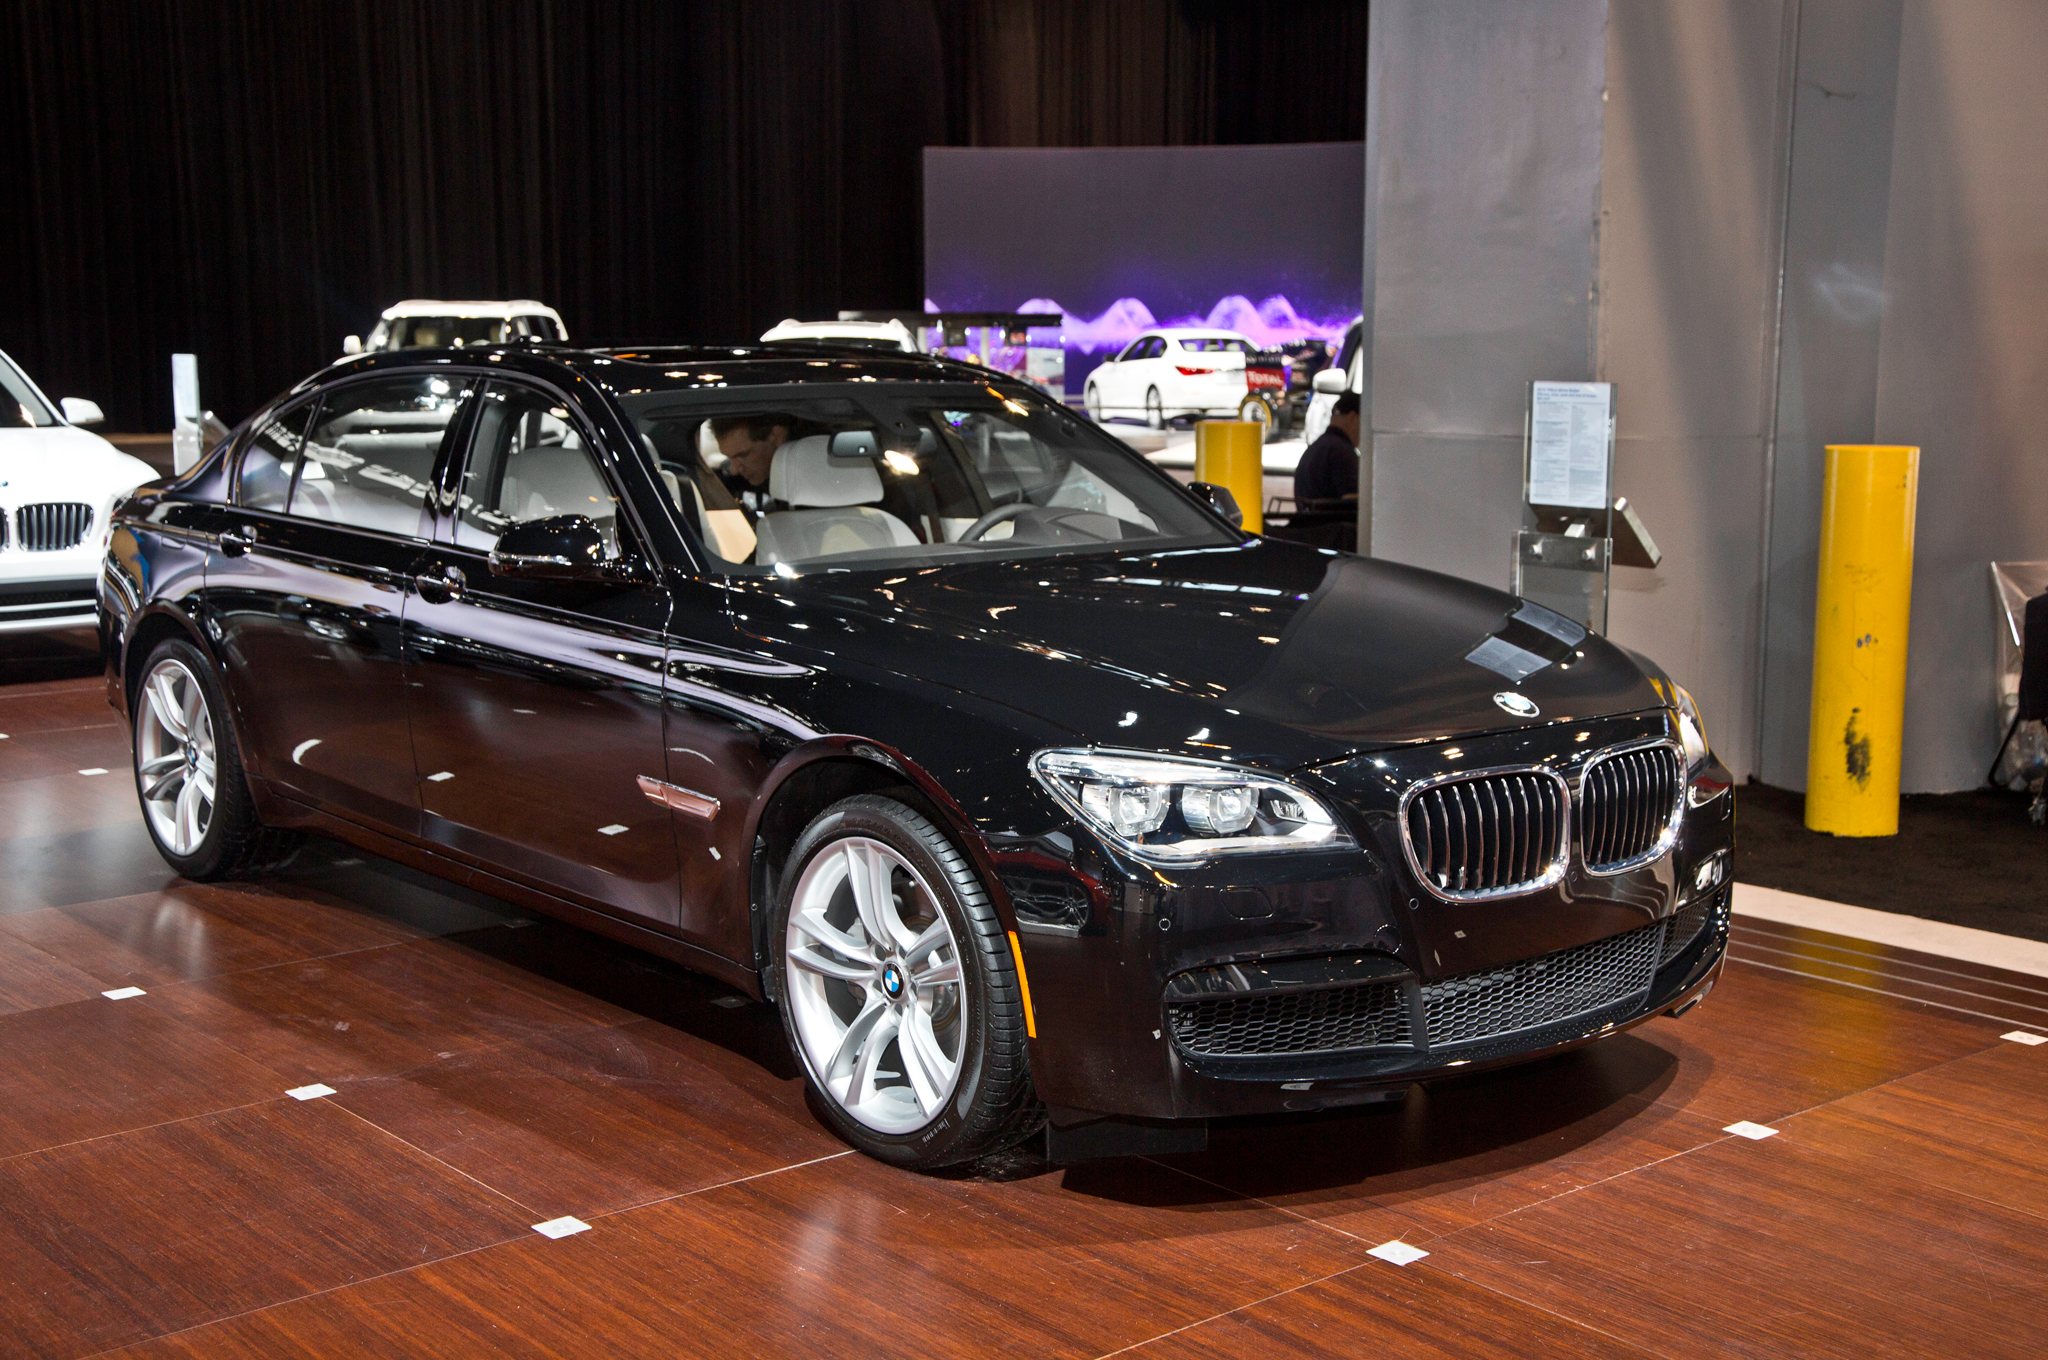 2014 BMW 740Ld xDrive Diesel Sedan Arriving This Spring